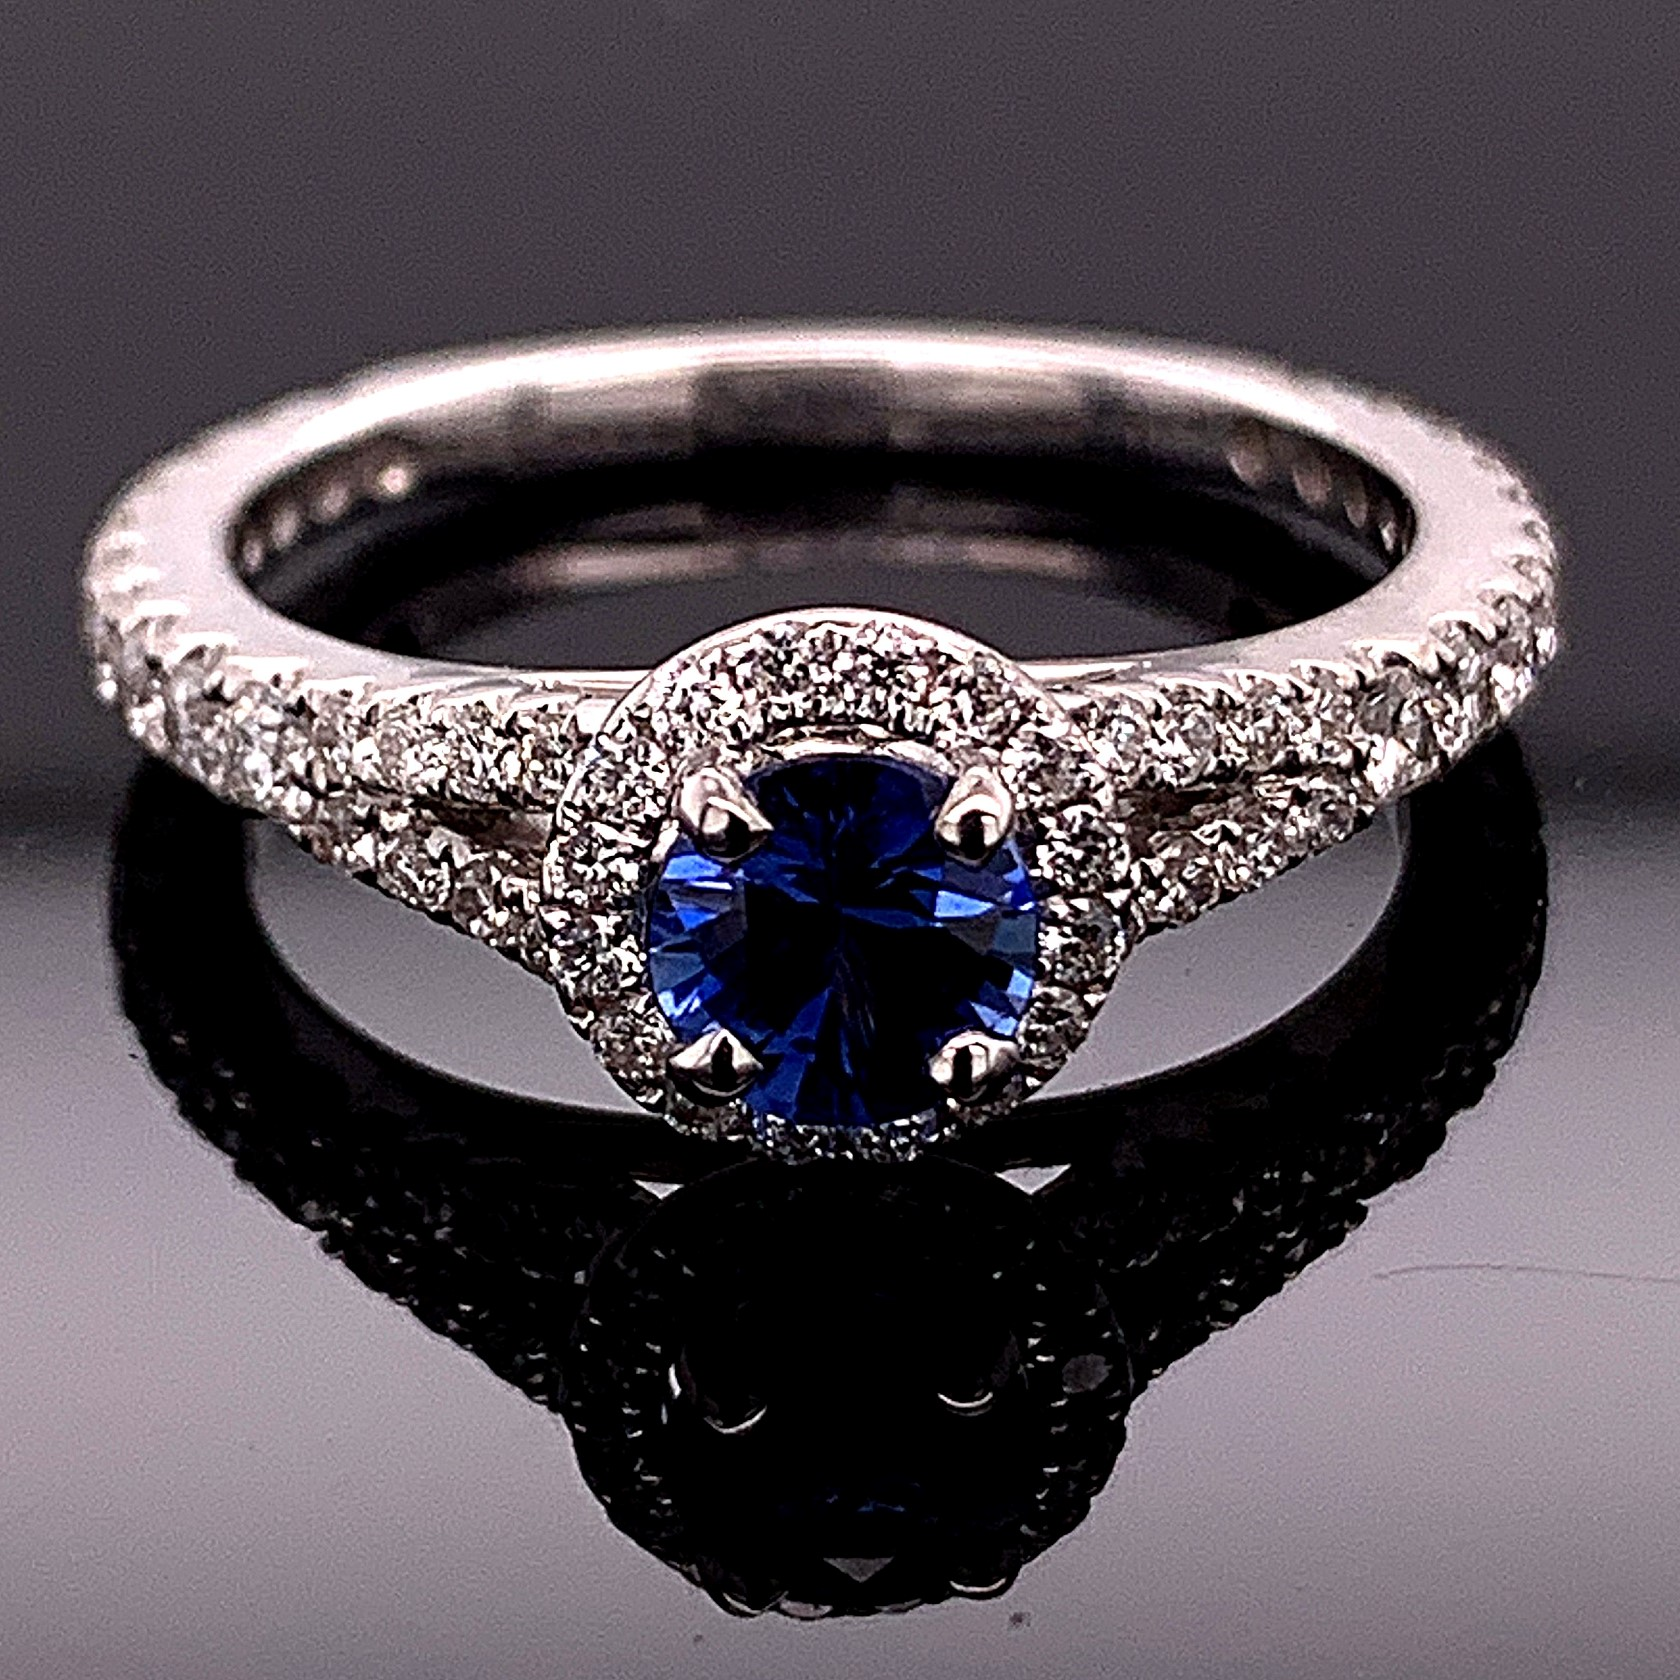 Women's Colored Stone Rings - Blue Sapphire And Diamond Ring